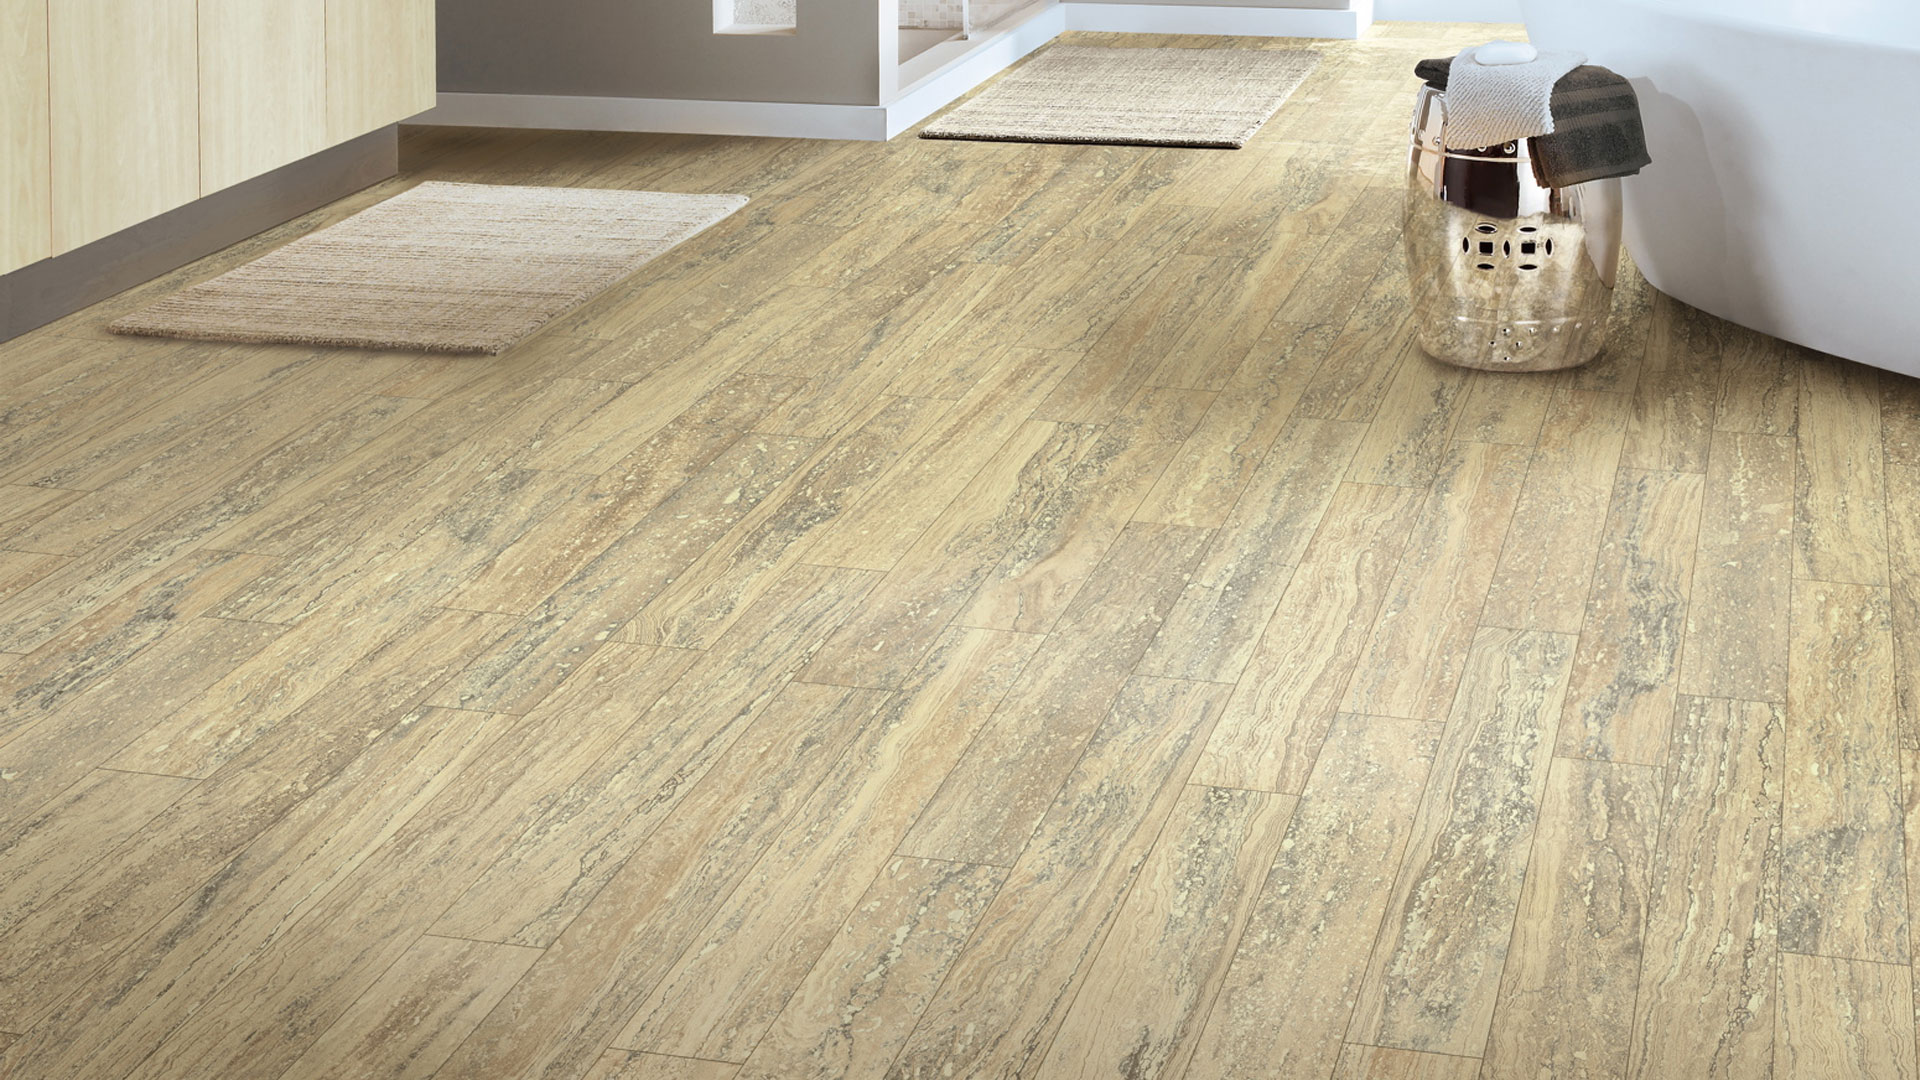 Resilient flooring vinyl sheet floors from armstrong for Floor vinyl tiles